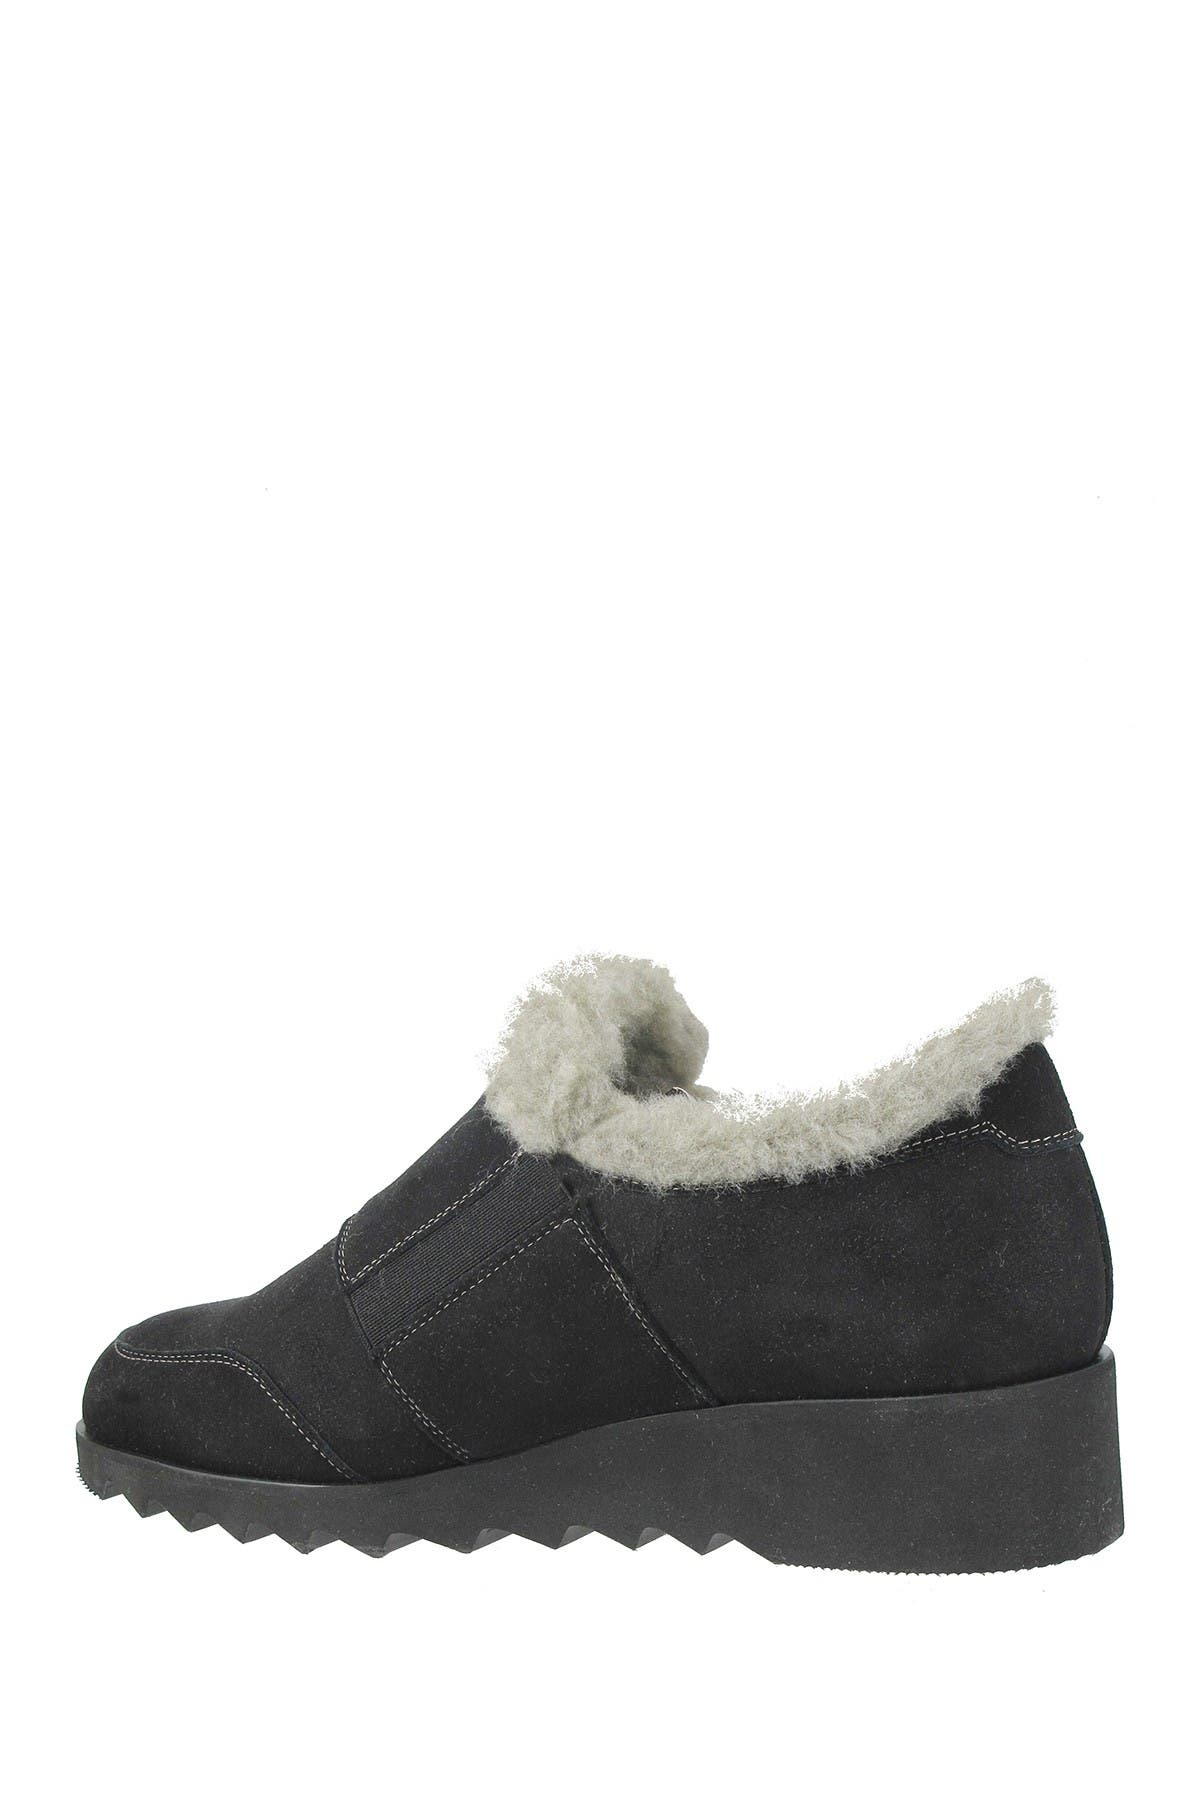 Image of RON WHITE Abileena Faux Shearling Wedge Loafer